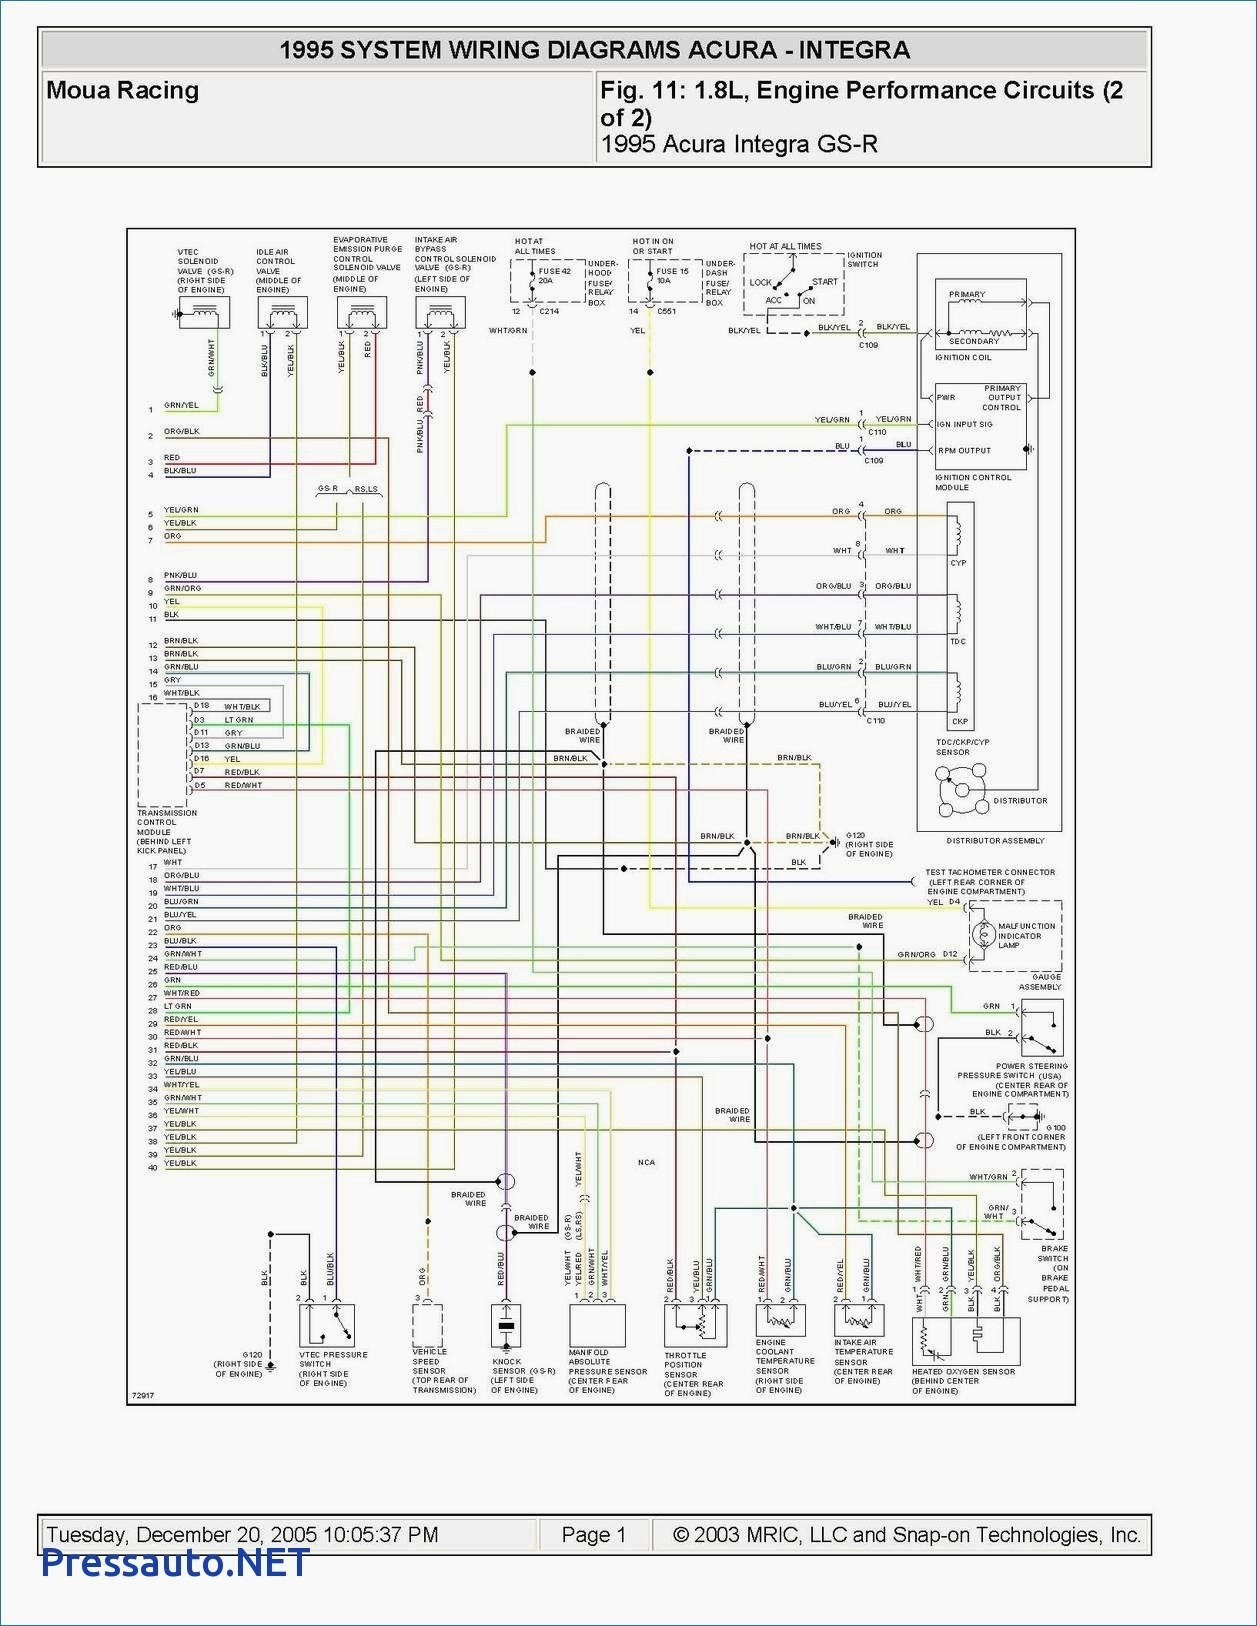 Race Car Wiring Diagram Awesome Ron Francis Wiring Diagrams Ideas Everything You Need to Of Race Car Wiring Diagram